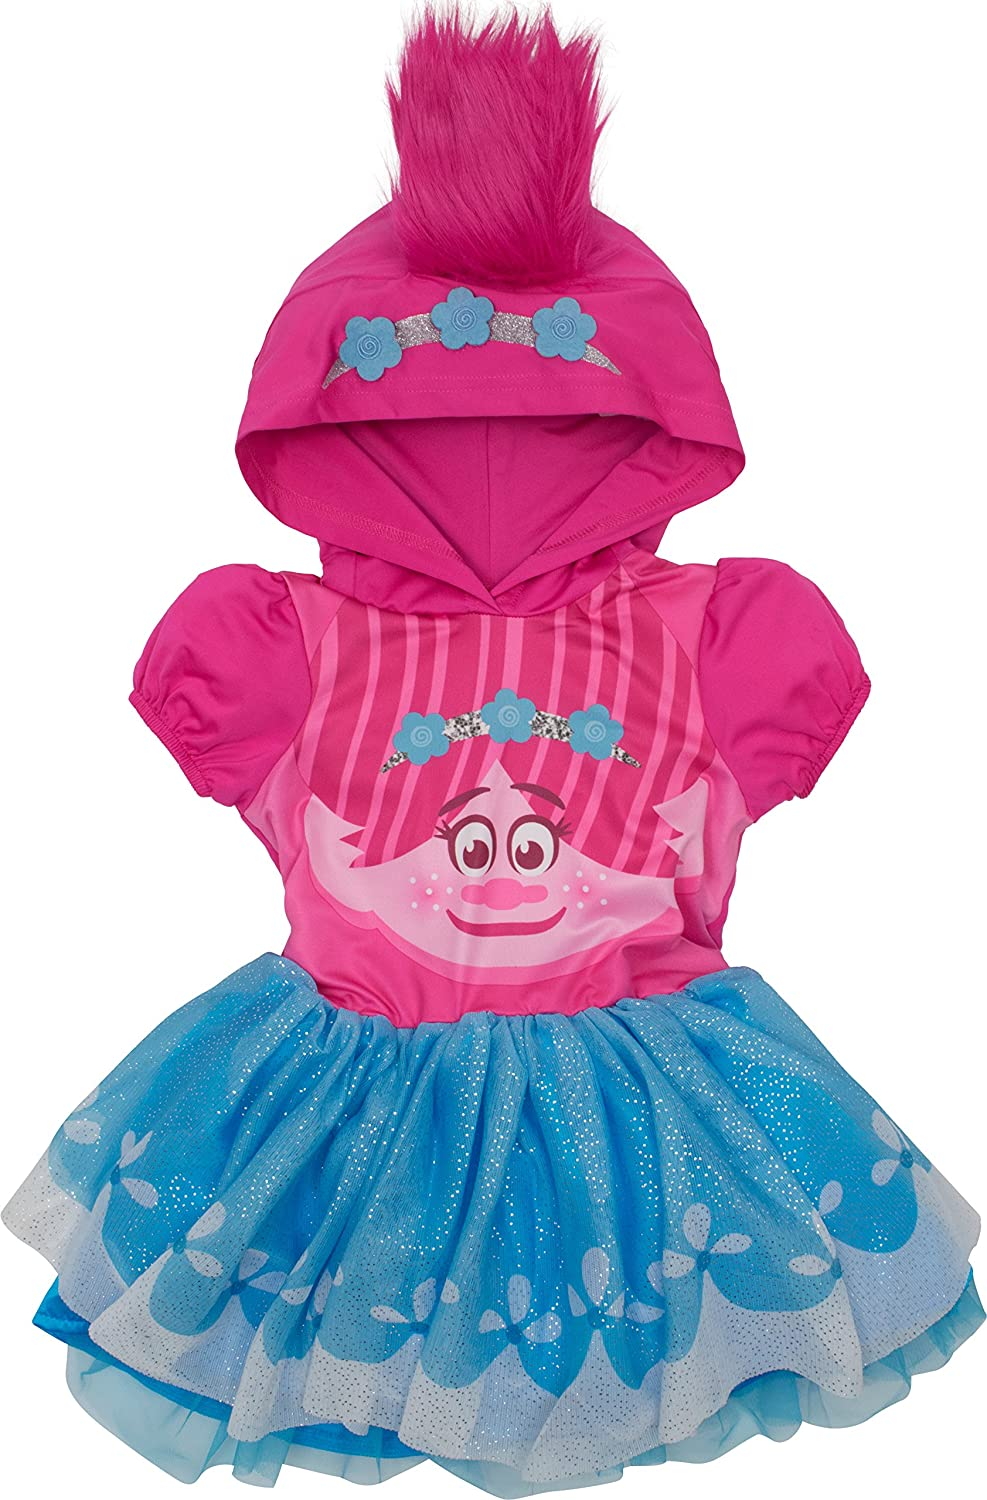 Trolls Poppy Toddler Girlsu0027 Costume Dress with Hood and Fur Hair Pink and Blue  sc 1 st  Amazon.com & Amazon.com: Cute as Can Be Toddler Costume Lightning Troll: Toys ...